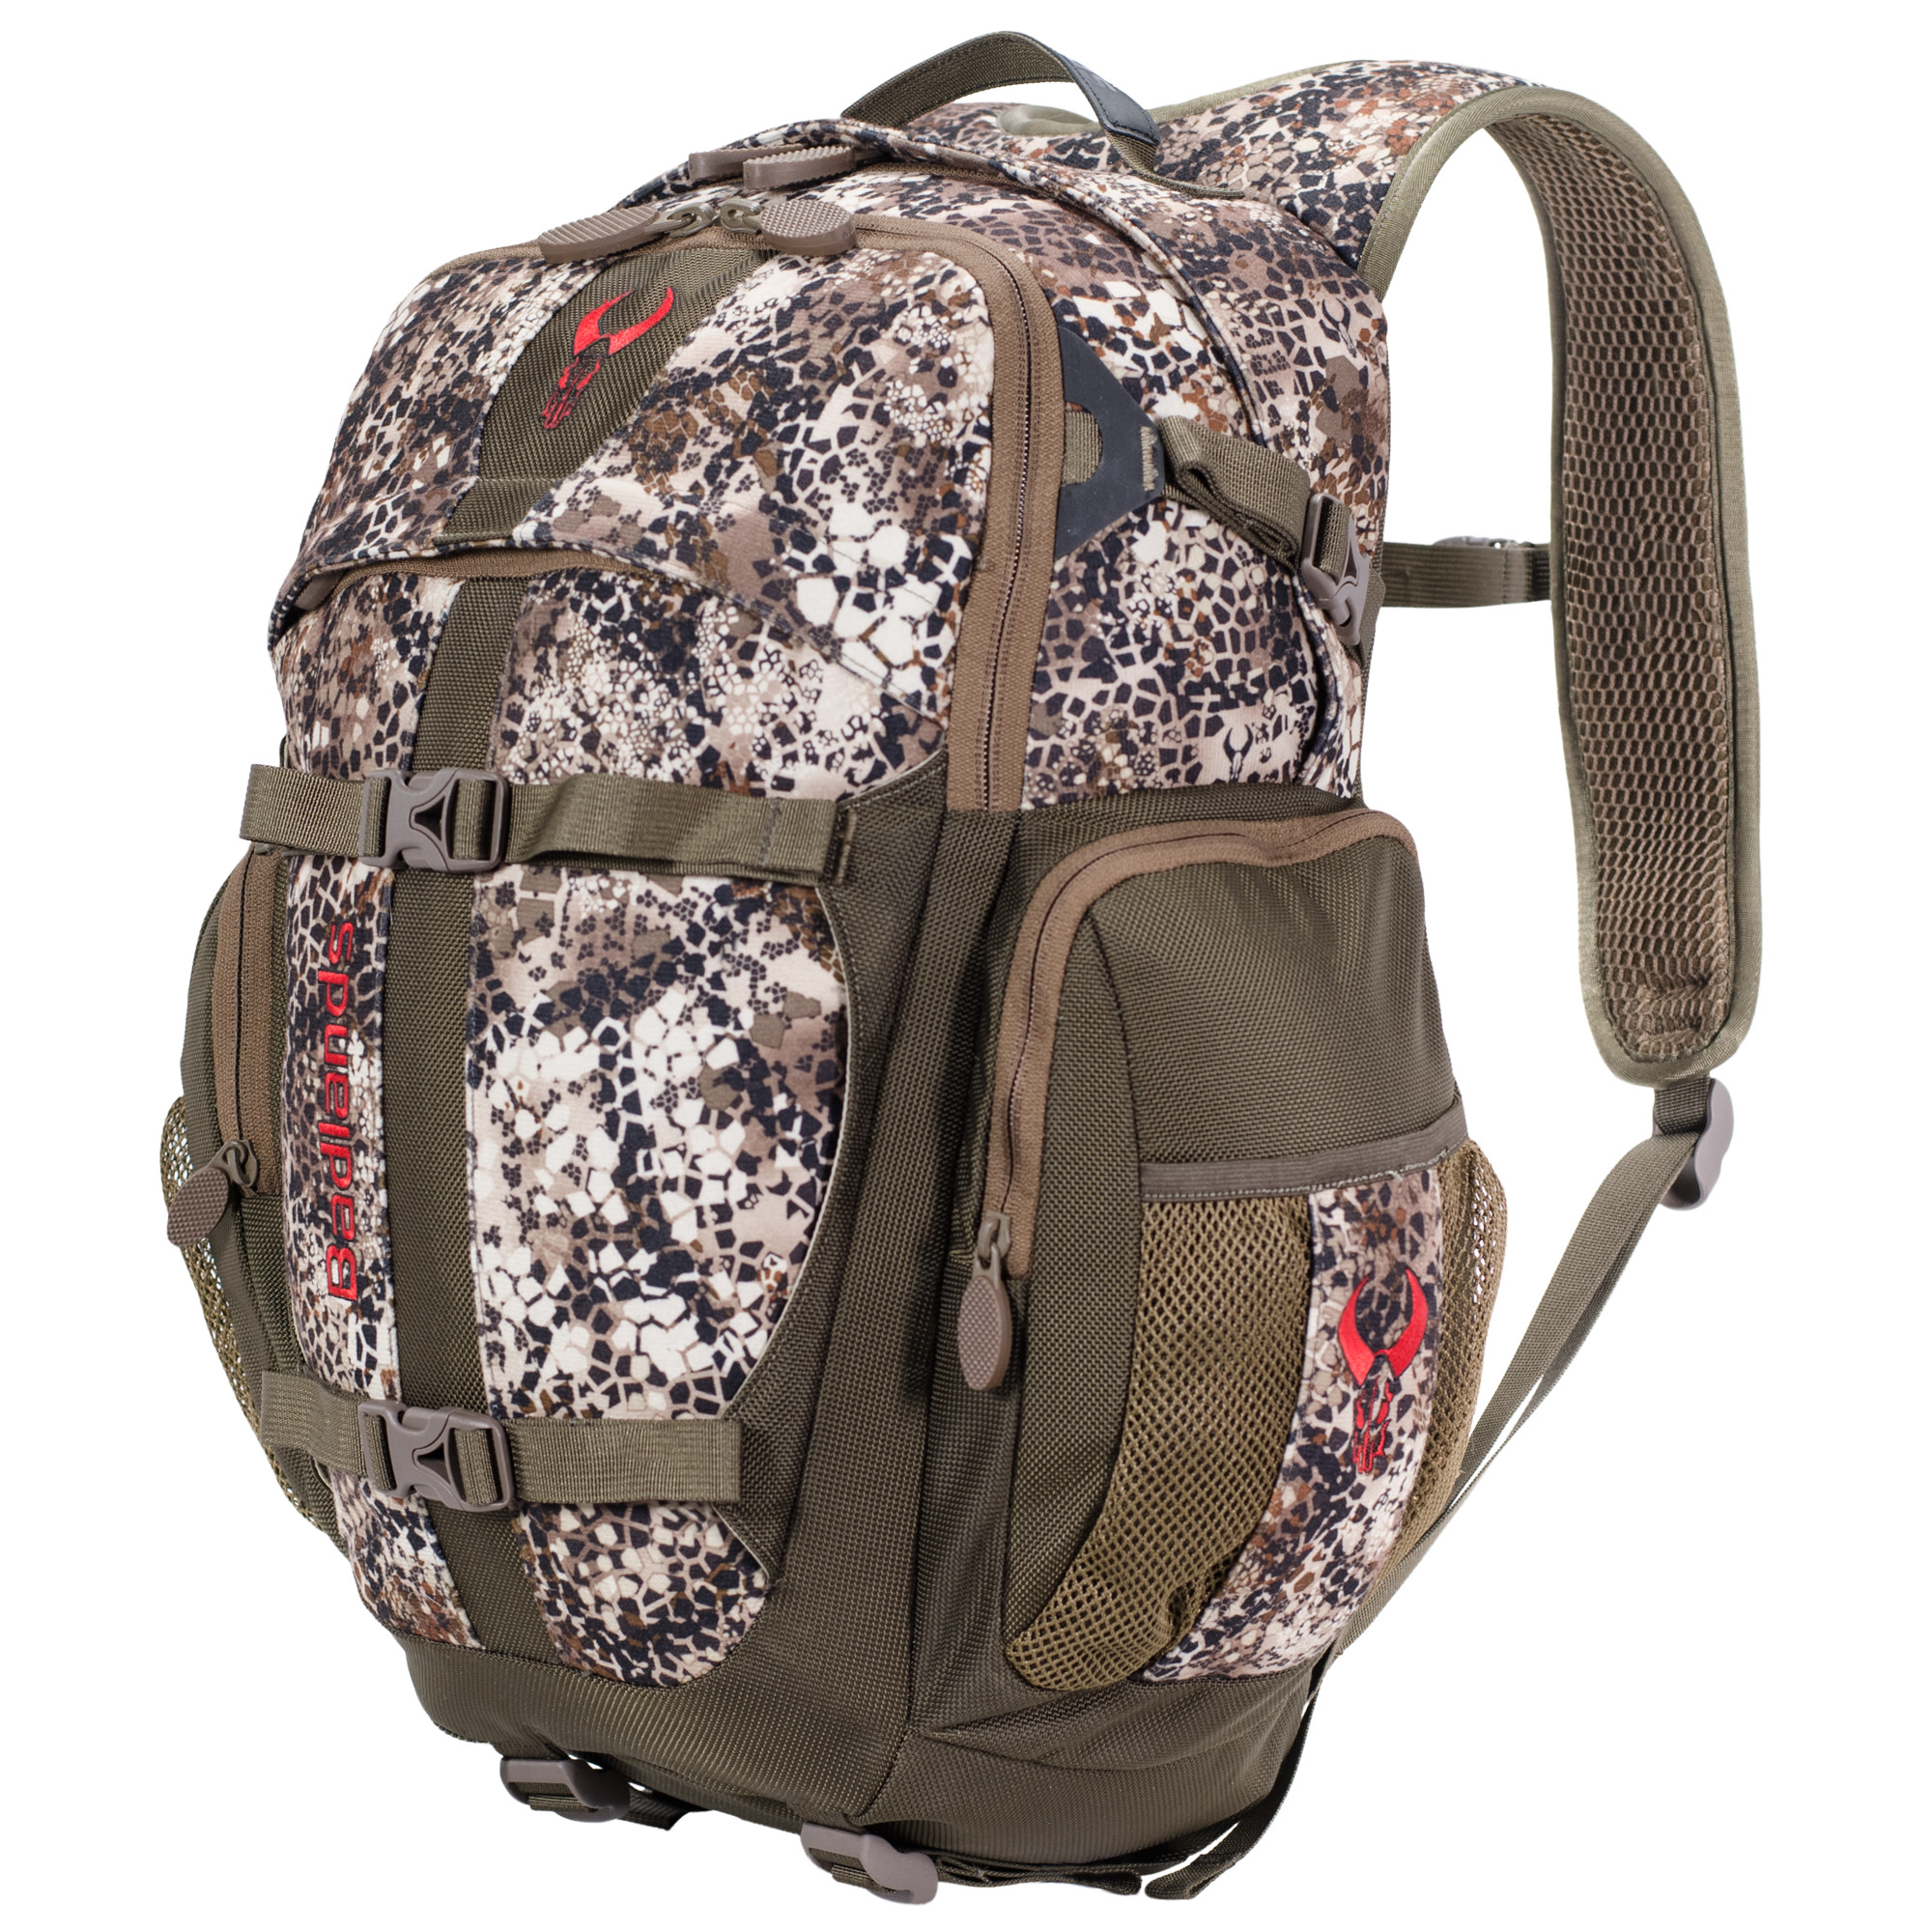 Badlands Pursuit Hunting Pack - Approach FX